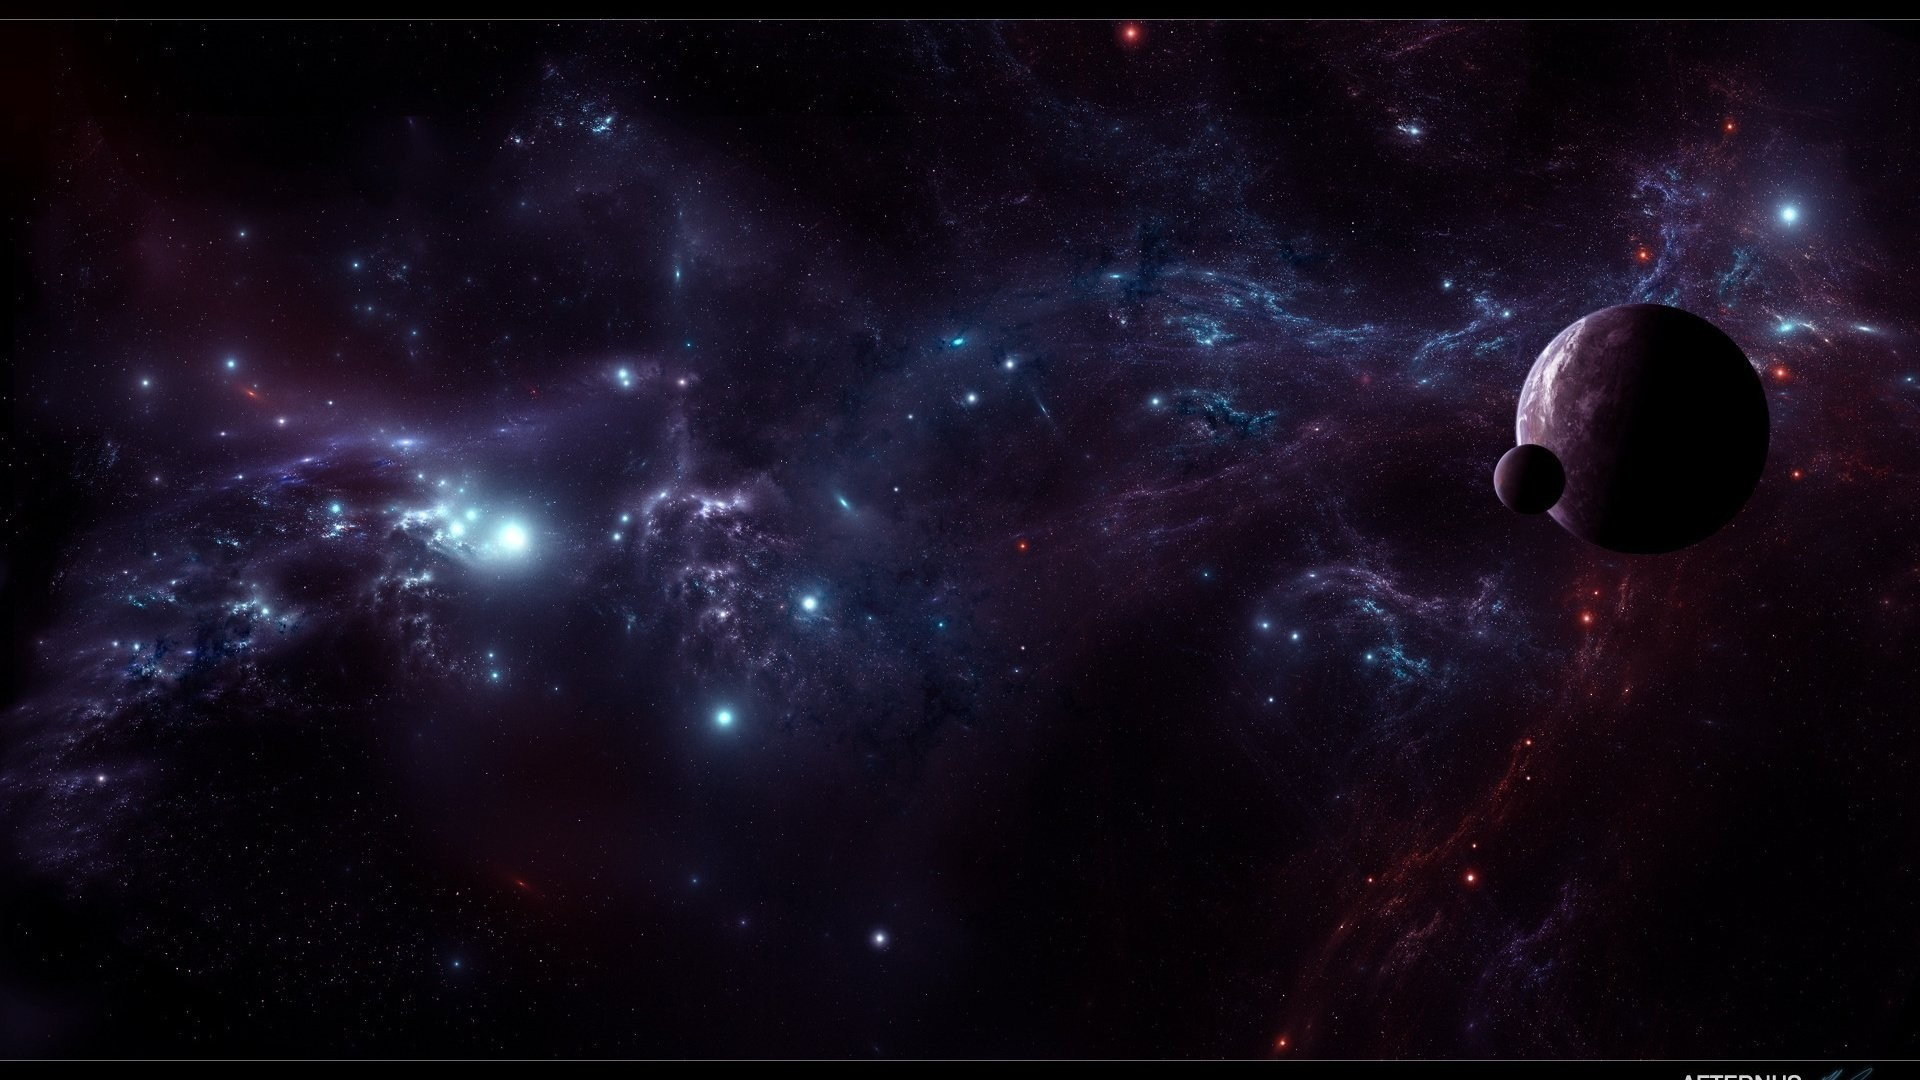 Universe Colorful Galaxy Nature Astronomy Galaxies 1920x1080 Download Hd Wallpaper Wallpapertip